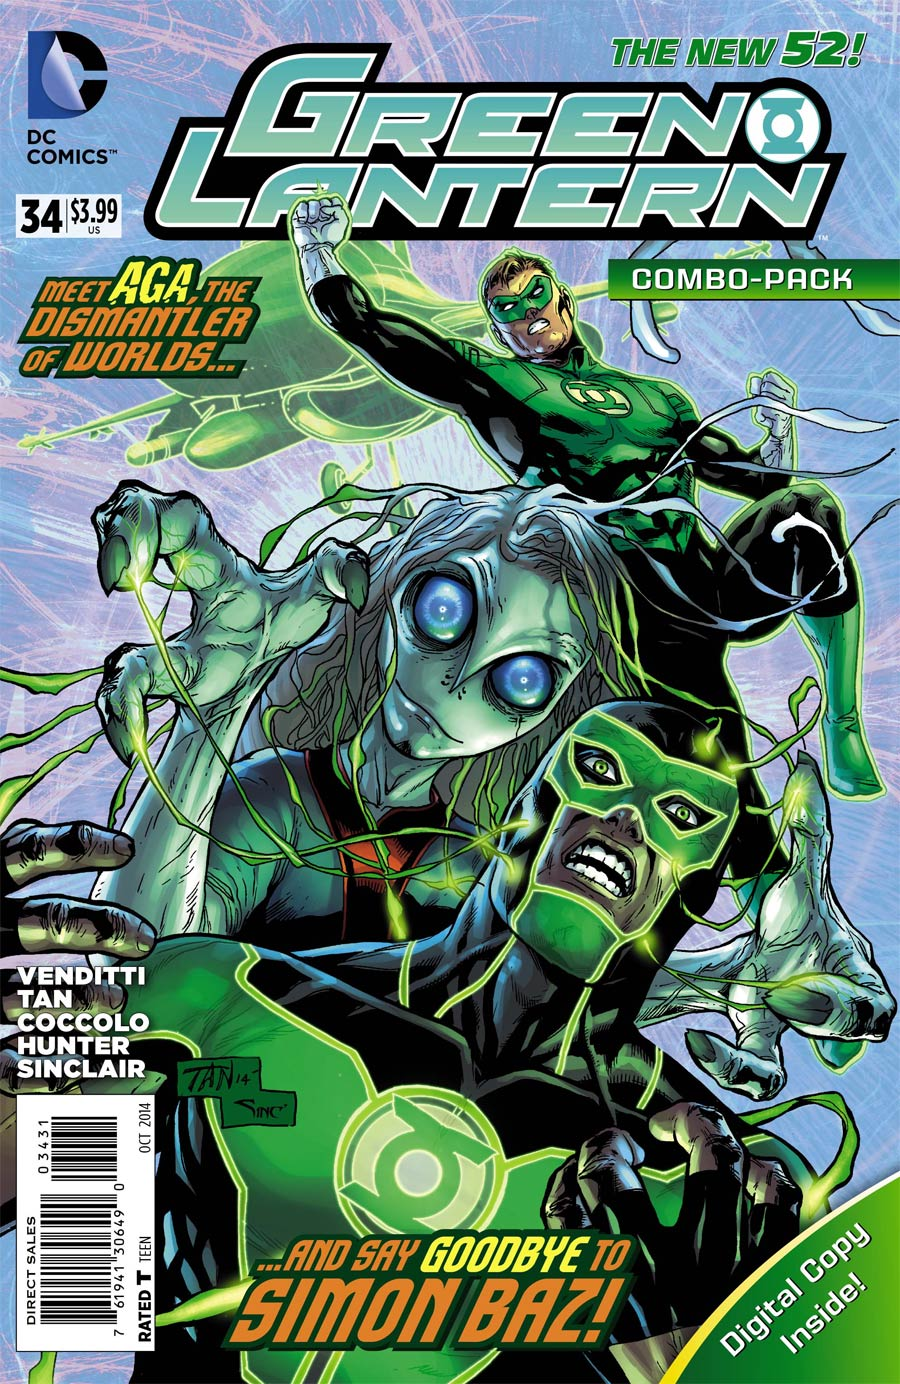 Green Lantern Vol 5 #34 Cover C Combo Pack With Polybag